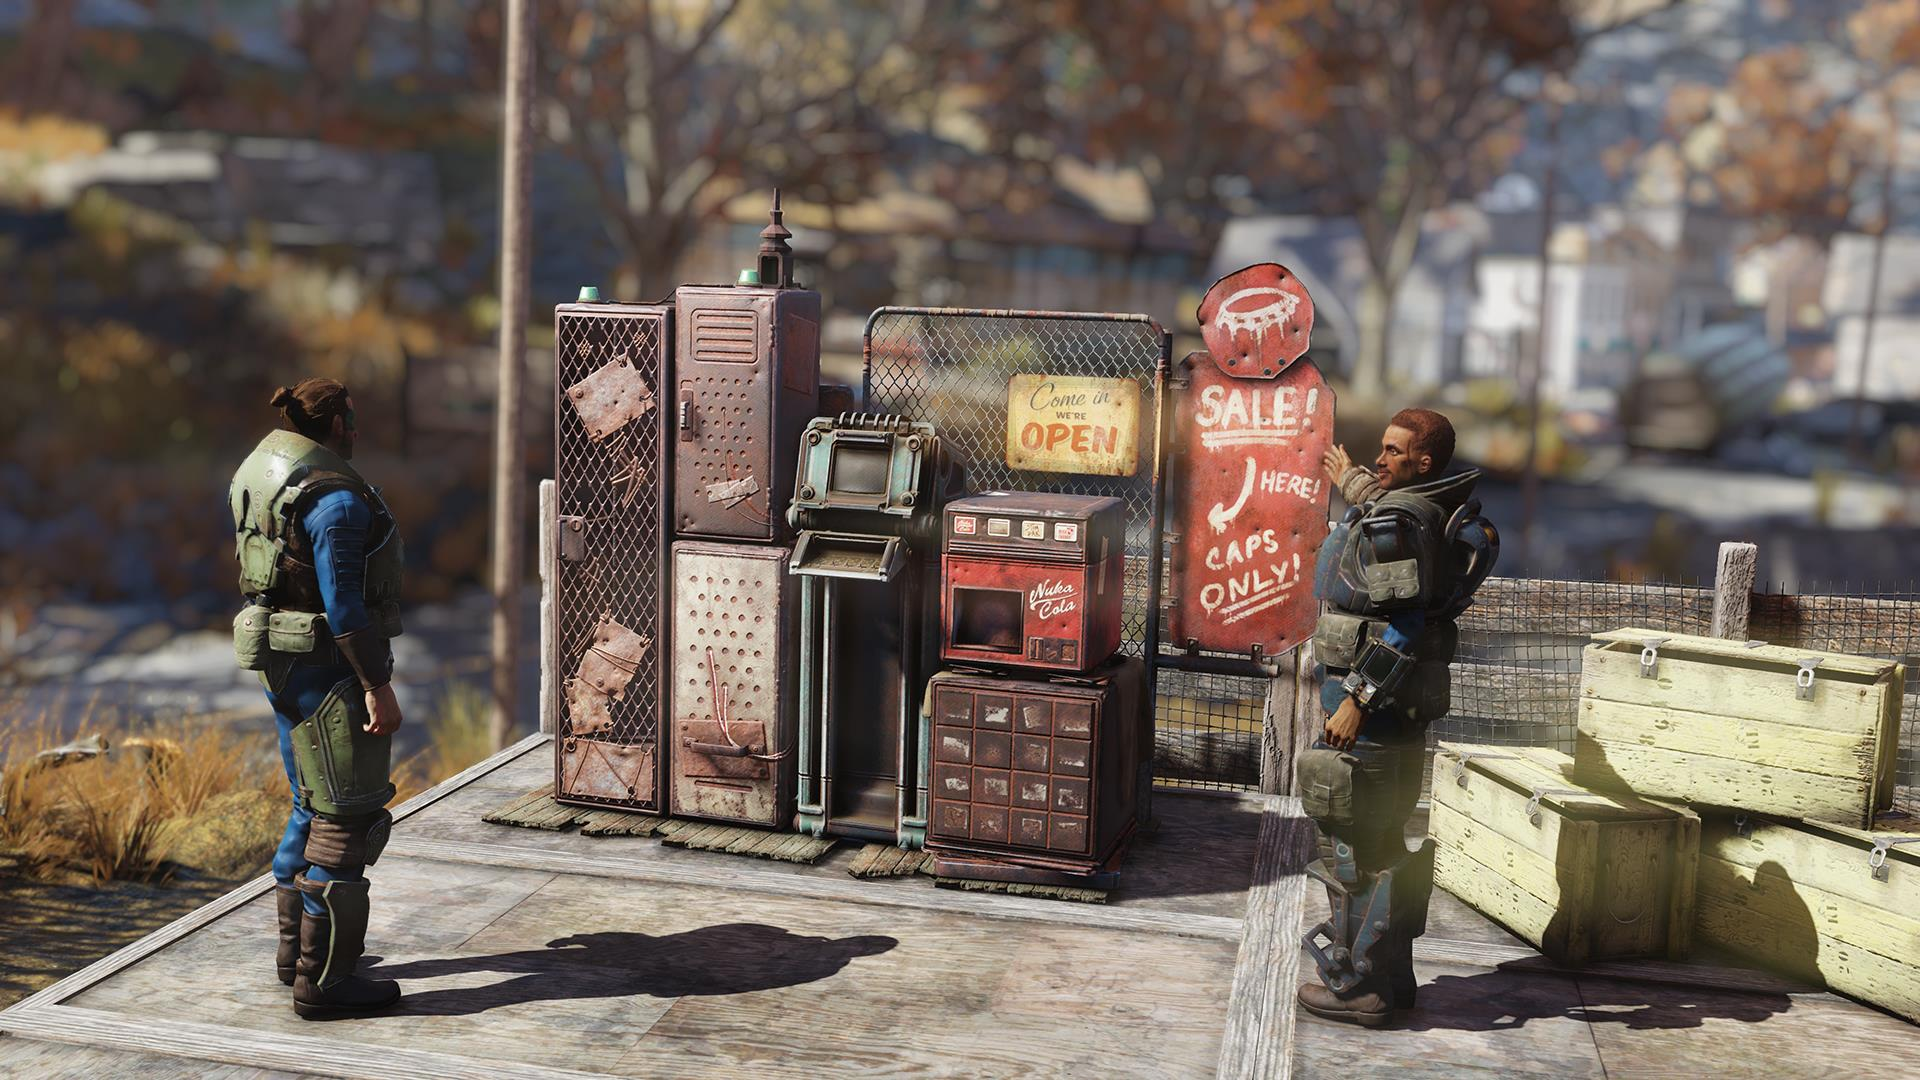 Fallout 76 has brought radical economic change to the